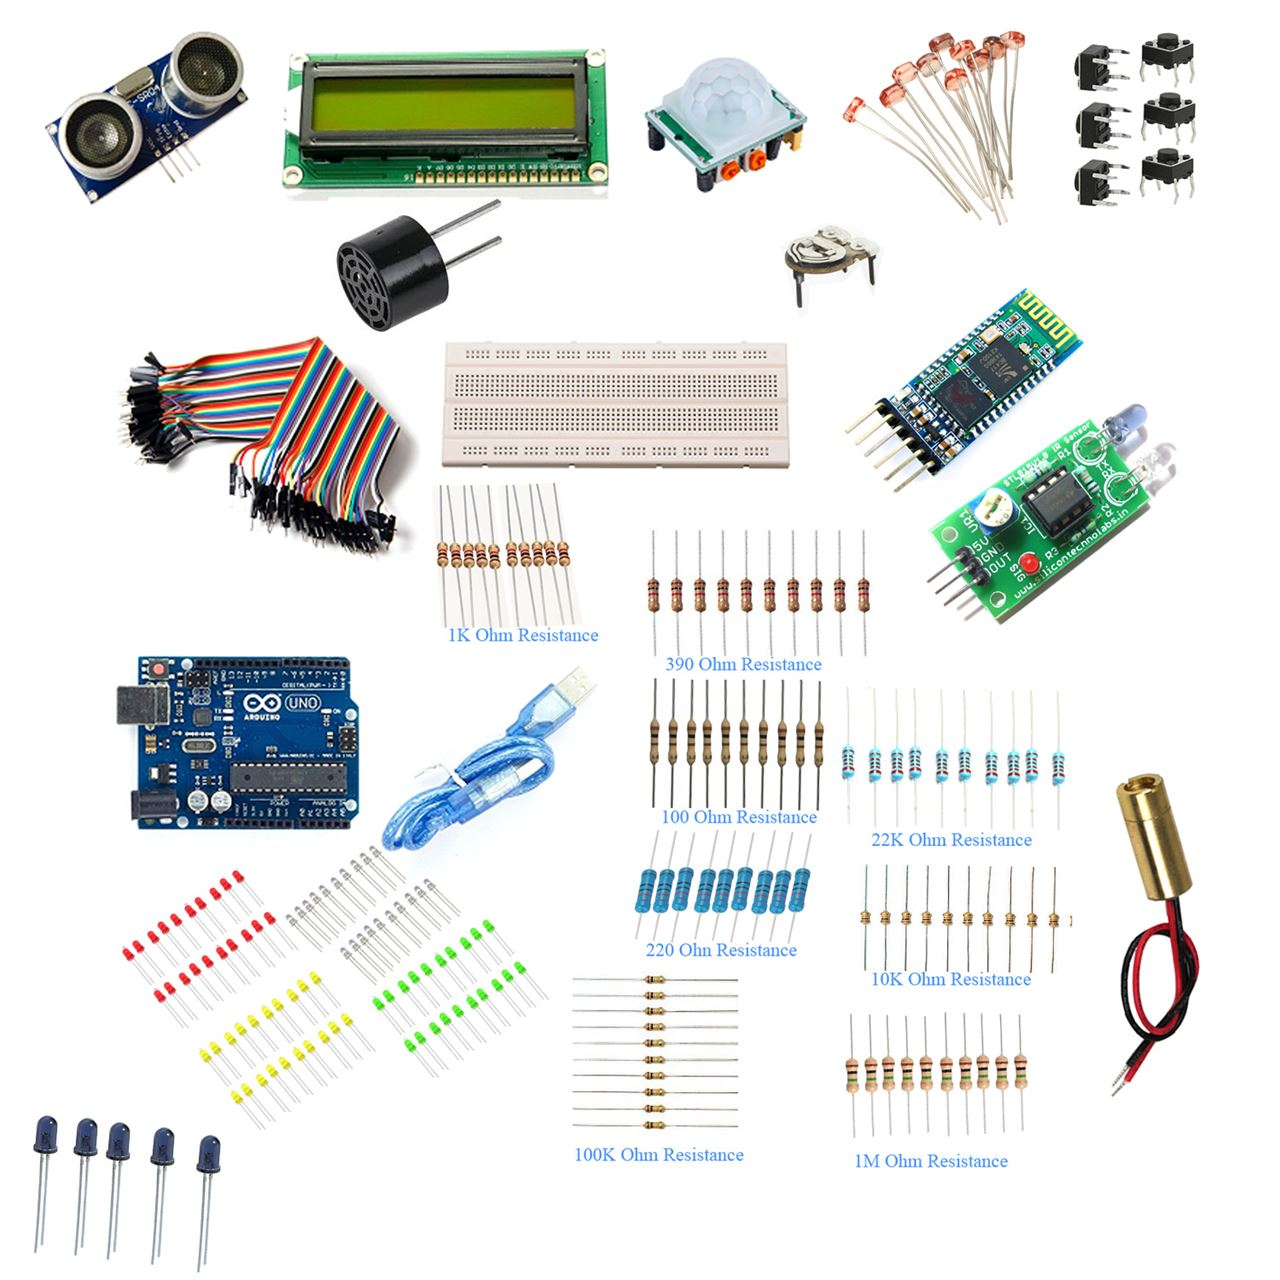 Adraxx Electronic Component Project Kit Electronics Circuits Projects Kits Hobby More